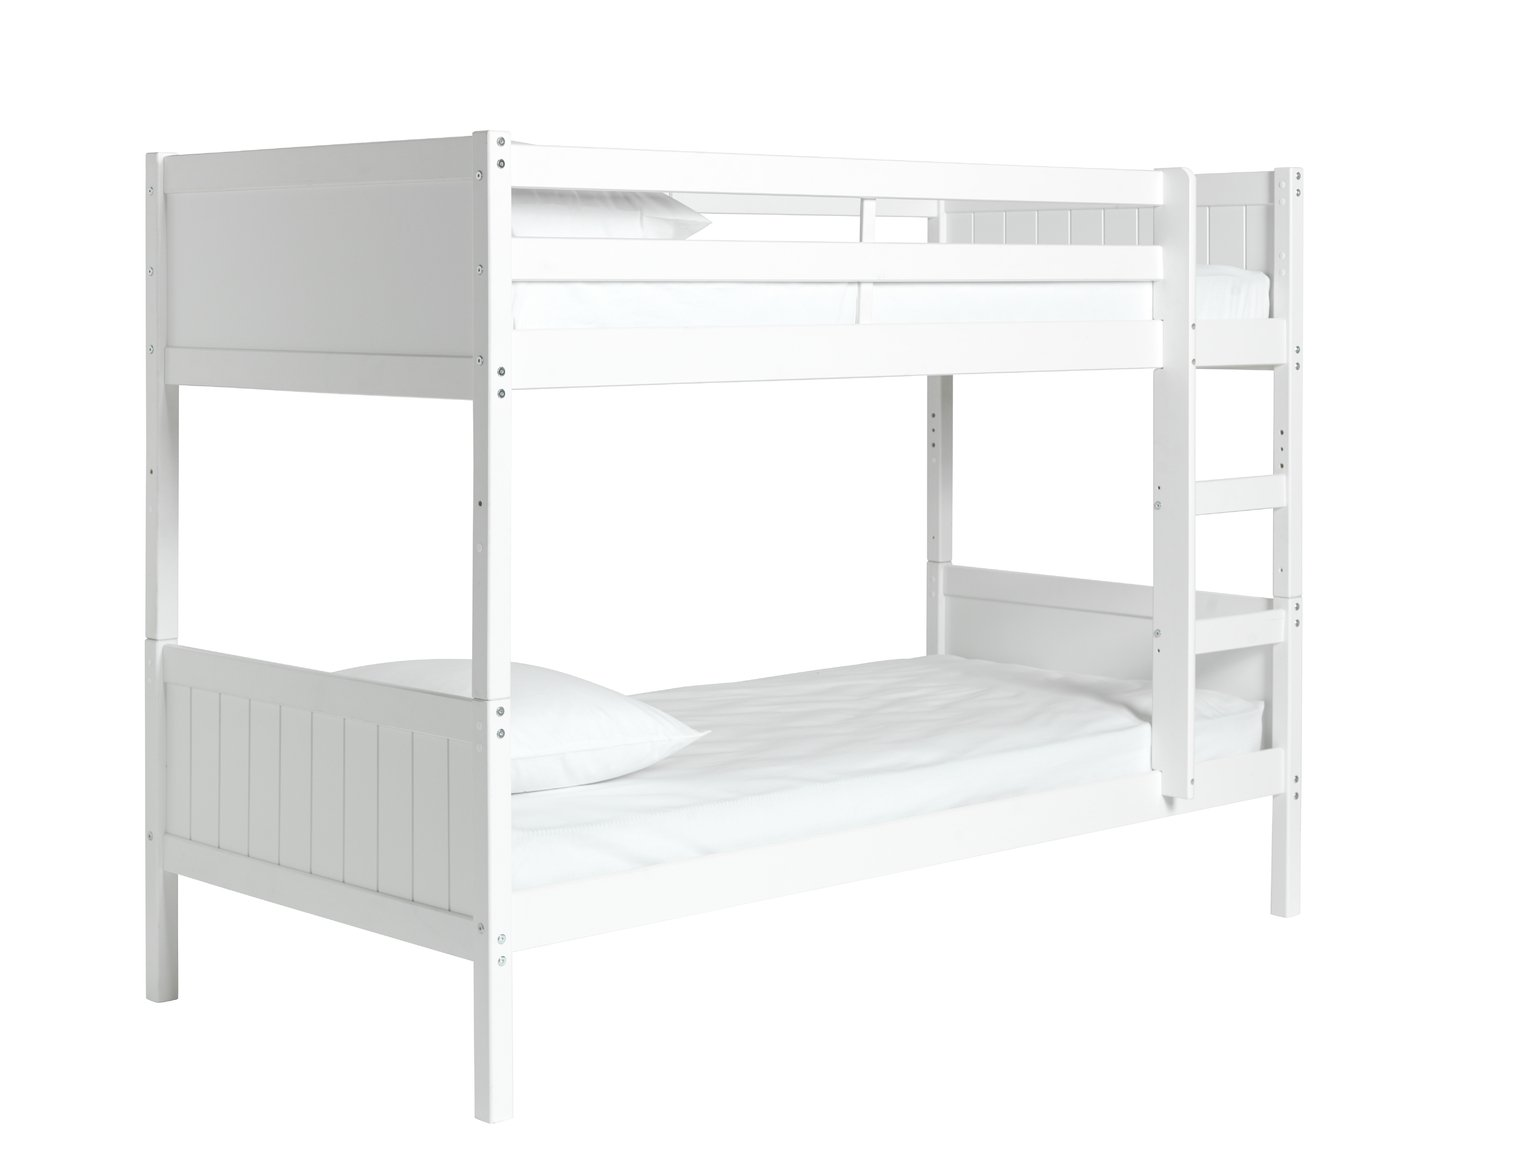 Tvilum San Francisco Full Size Bed slats Best Price and Cheapest